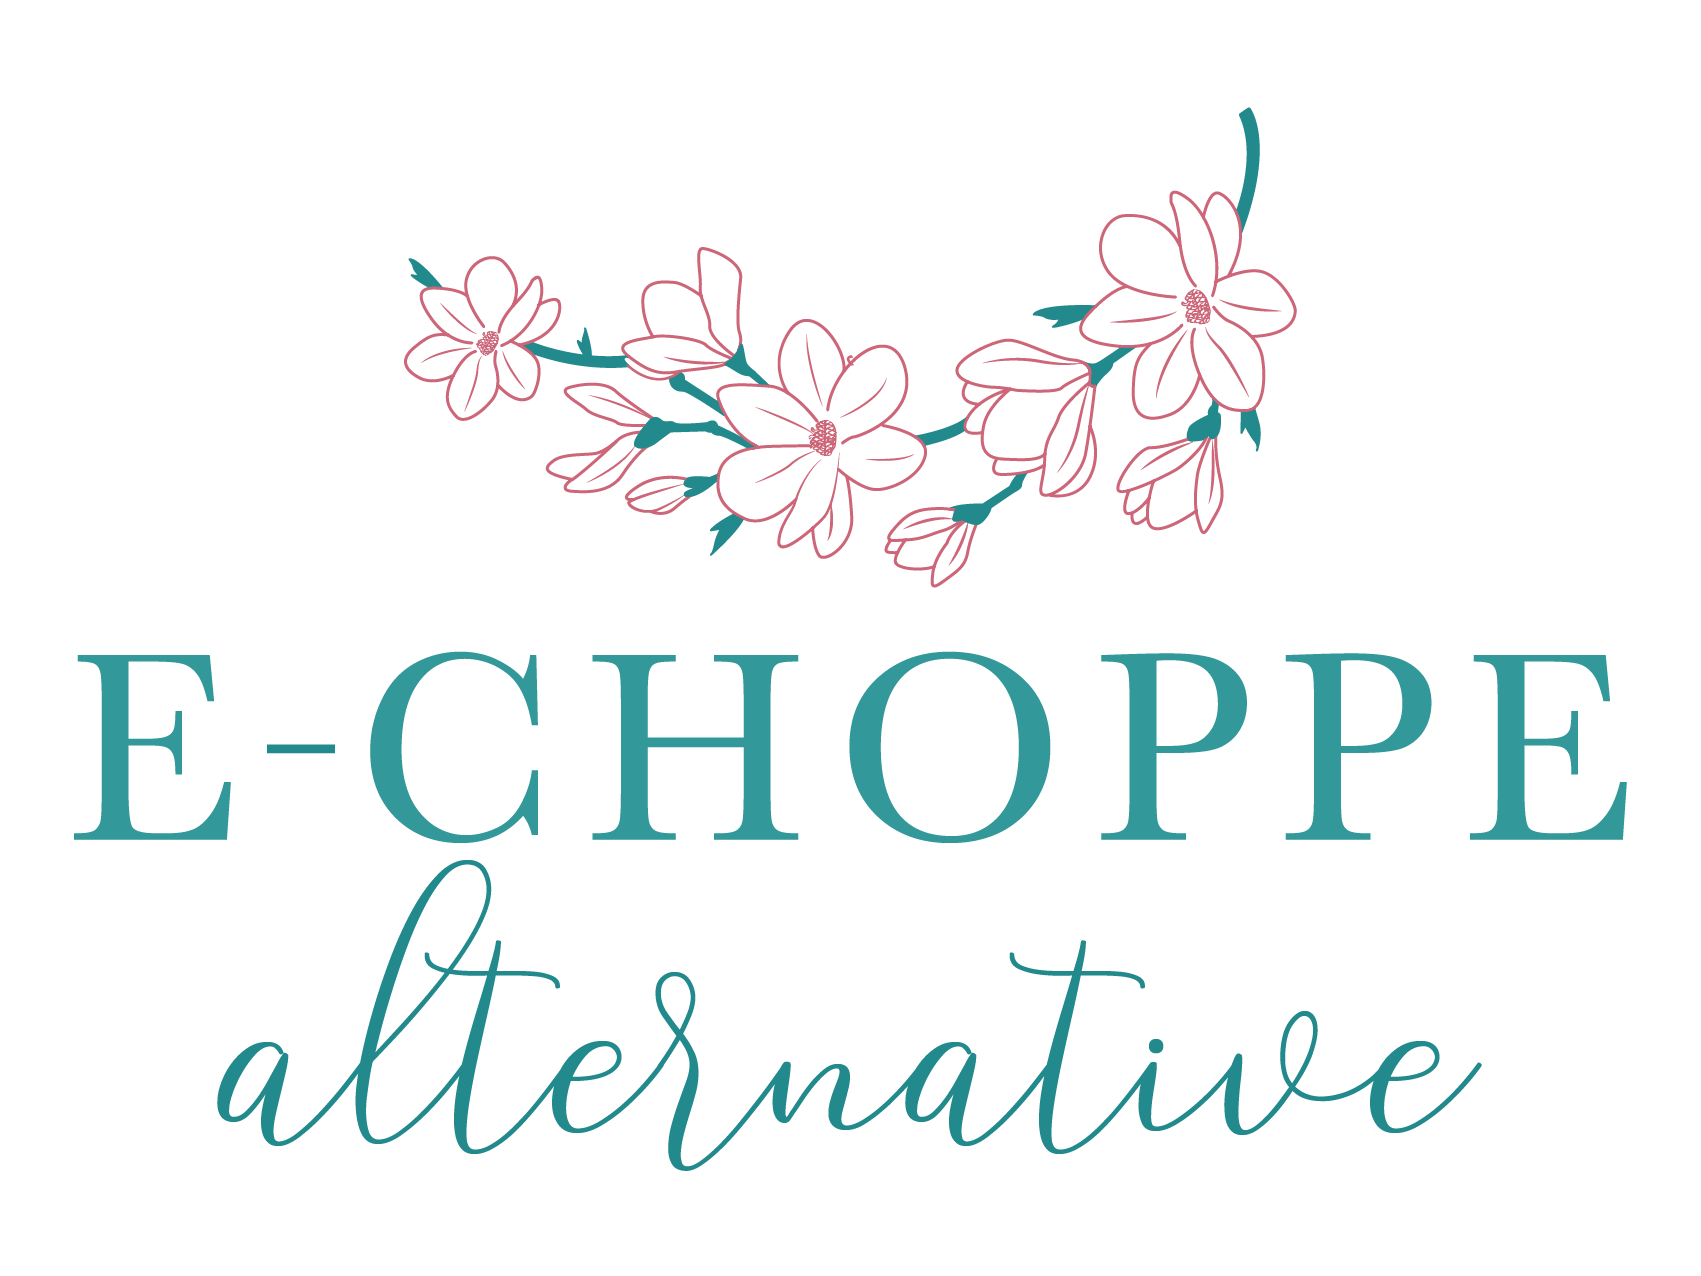 E-Choppe Alternative